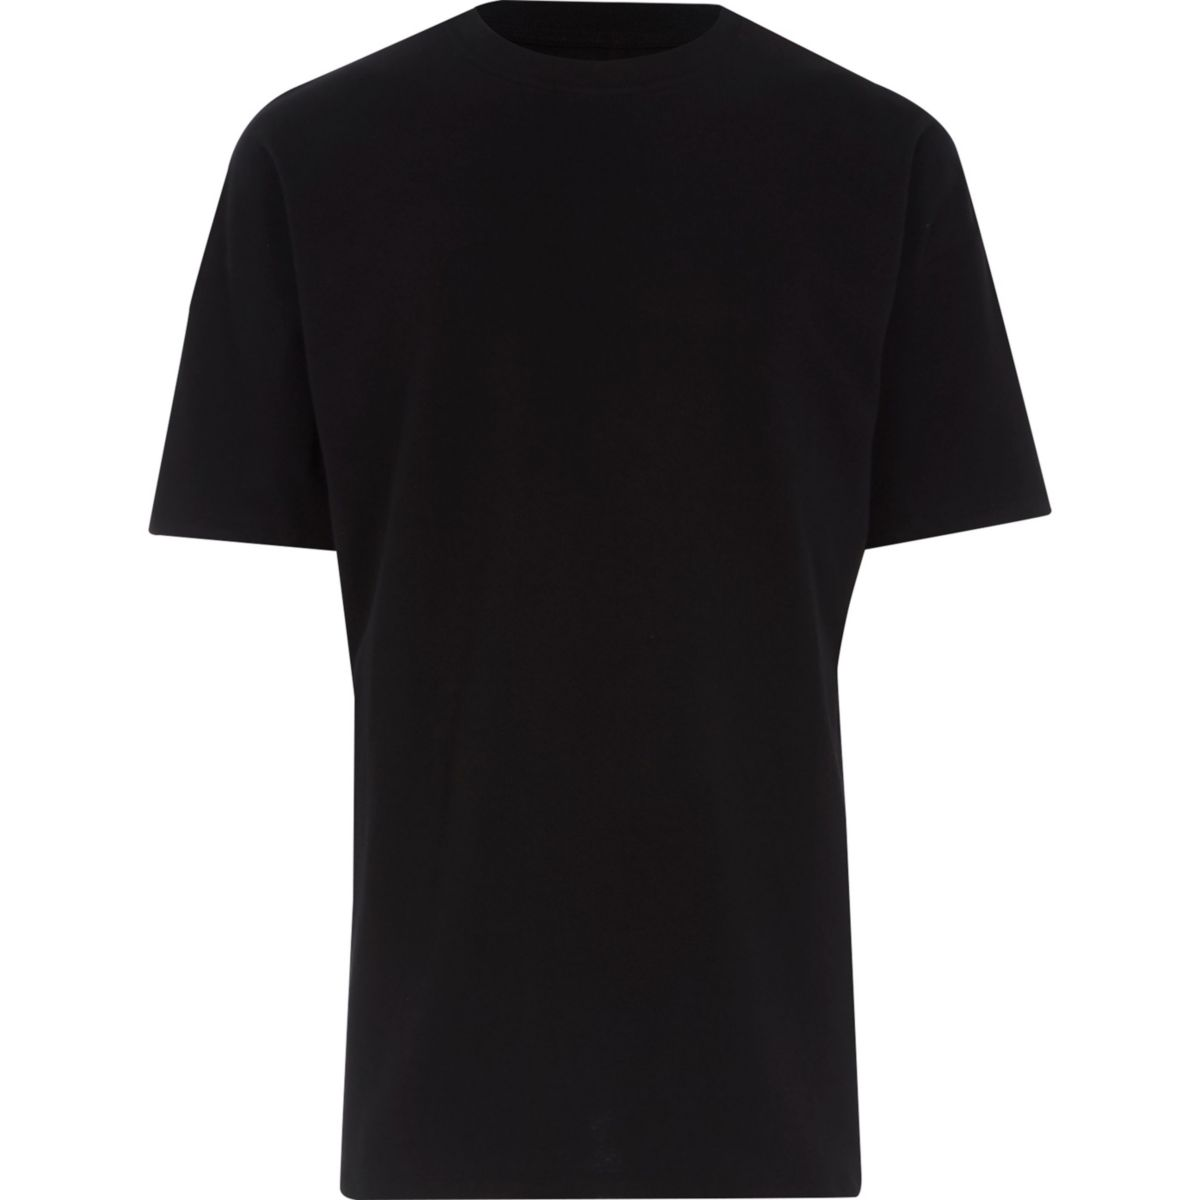 Big and Tall black oversize fit T-shirt